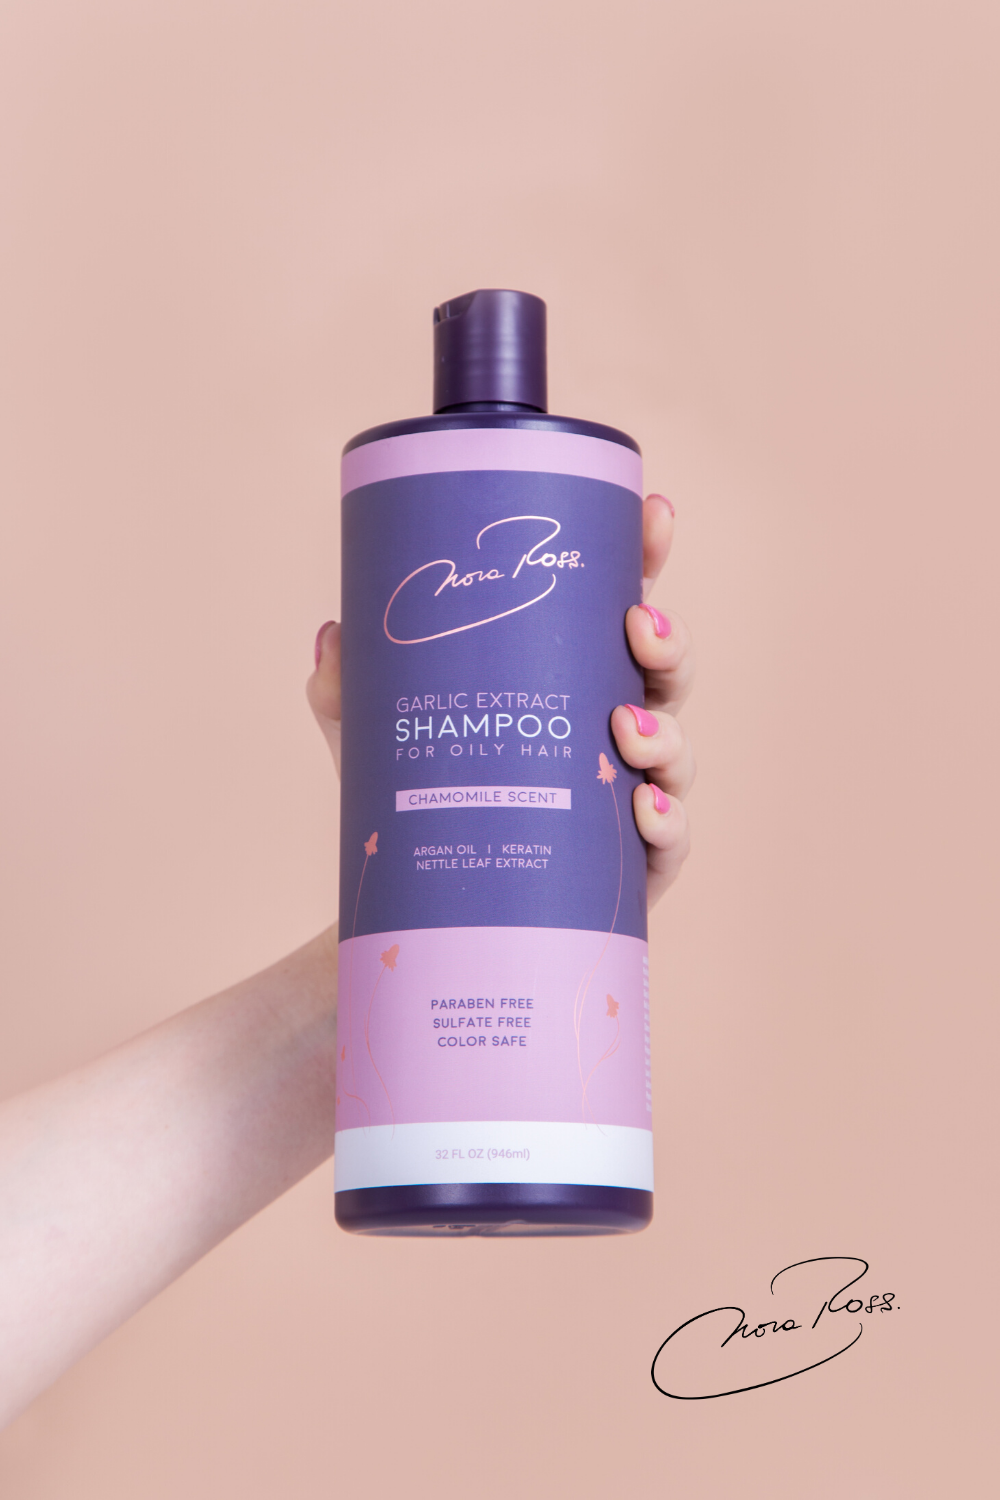 Our chamomile garlic extract shampoo for normal to dry hair eliminates brittle damaged hair, fights dandruff, and removes build-up at the roots, encouraging silkiness, reducing breakage, and hydrating for smooth hair. The effect? A frizz-free hair, full of movement, and more resistant to future damage. #beautifulhair #healthyhair #garlicextract #smoothhair #silkyhair #hydratedhair #HomeRemediesForSmoothHair